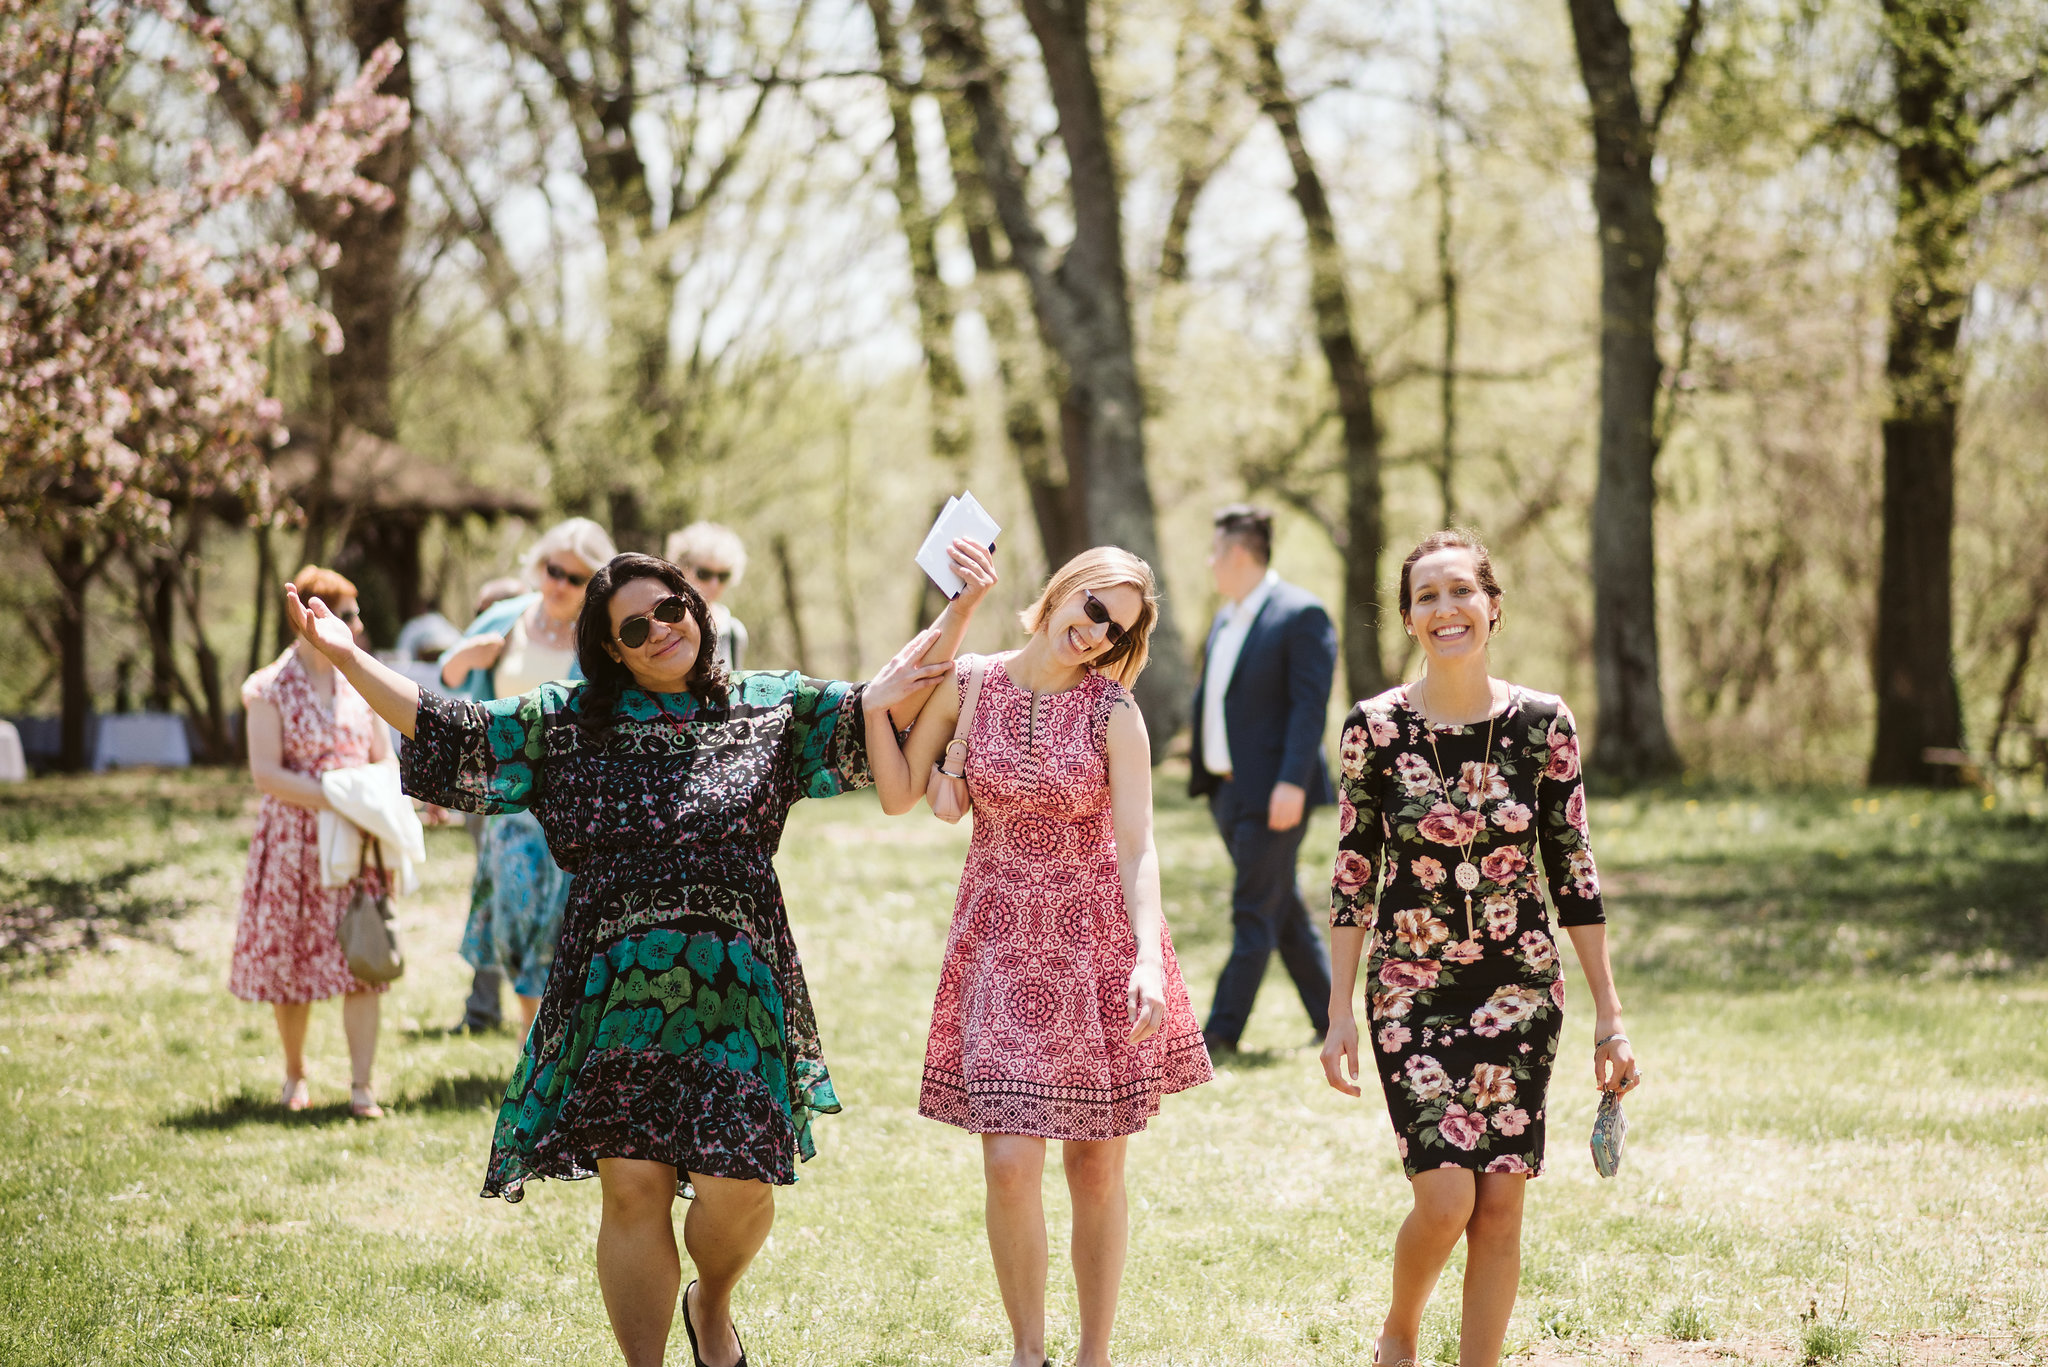 Spring Outdoor Wedding, Park, Baltimore Wedding Photographer, DIY, Classic, Upcycled, Garden Party, Romantic, Guests Smiling and Walking to Ceremony